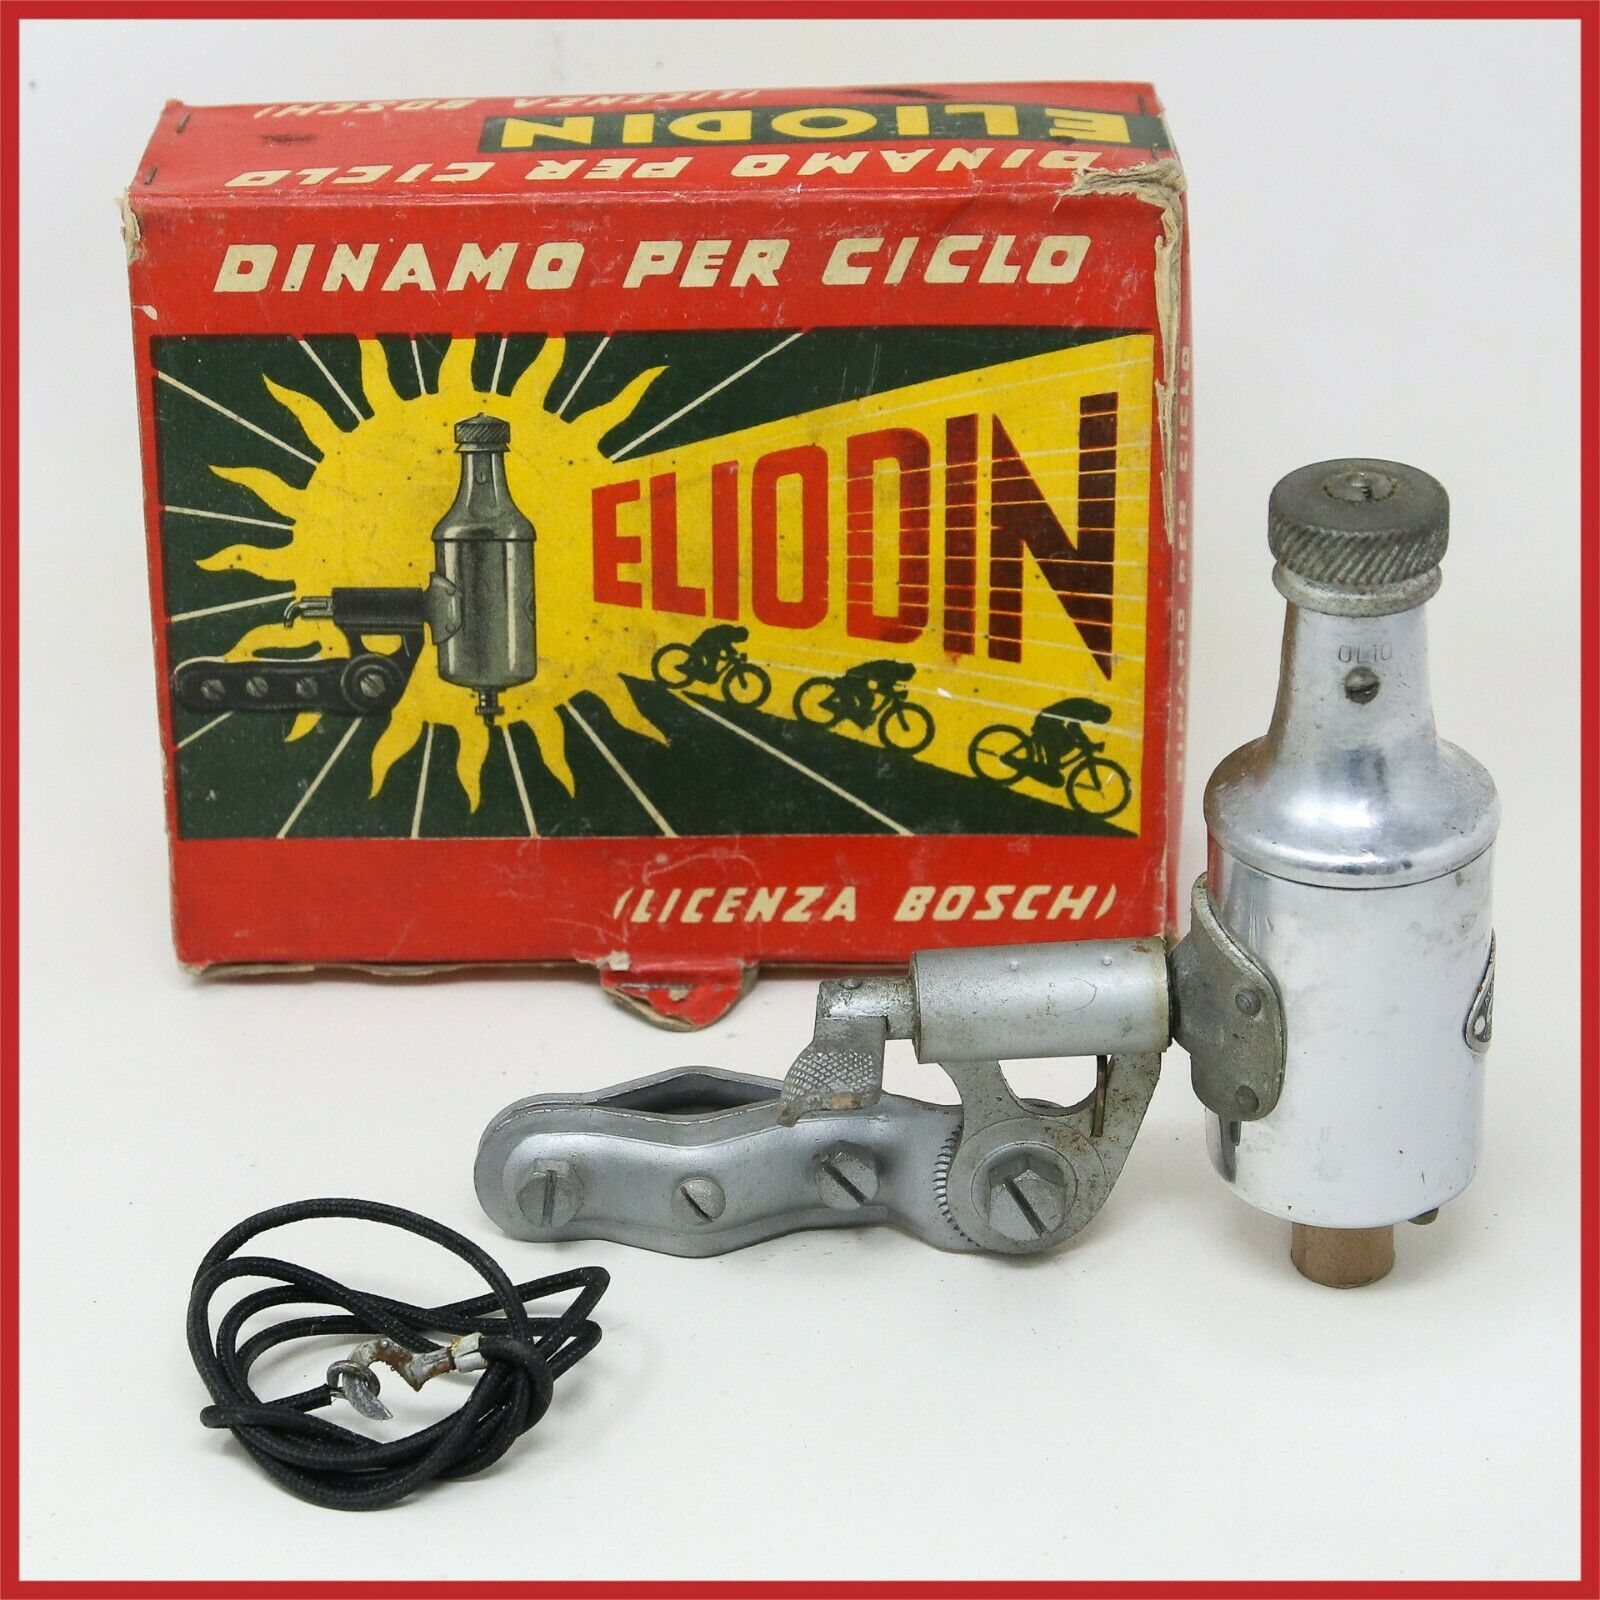 NOS ELODIN BOSCH DYNAMO 40s 50s ROED TOURING bicicletta ANTIQUE OLD ITALIAN vintage